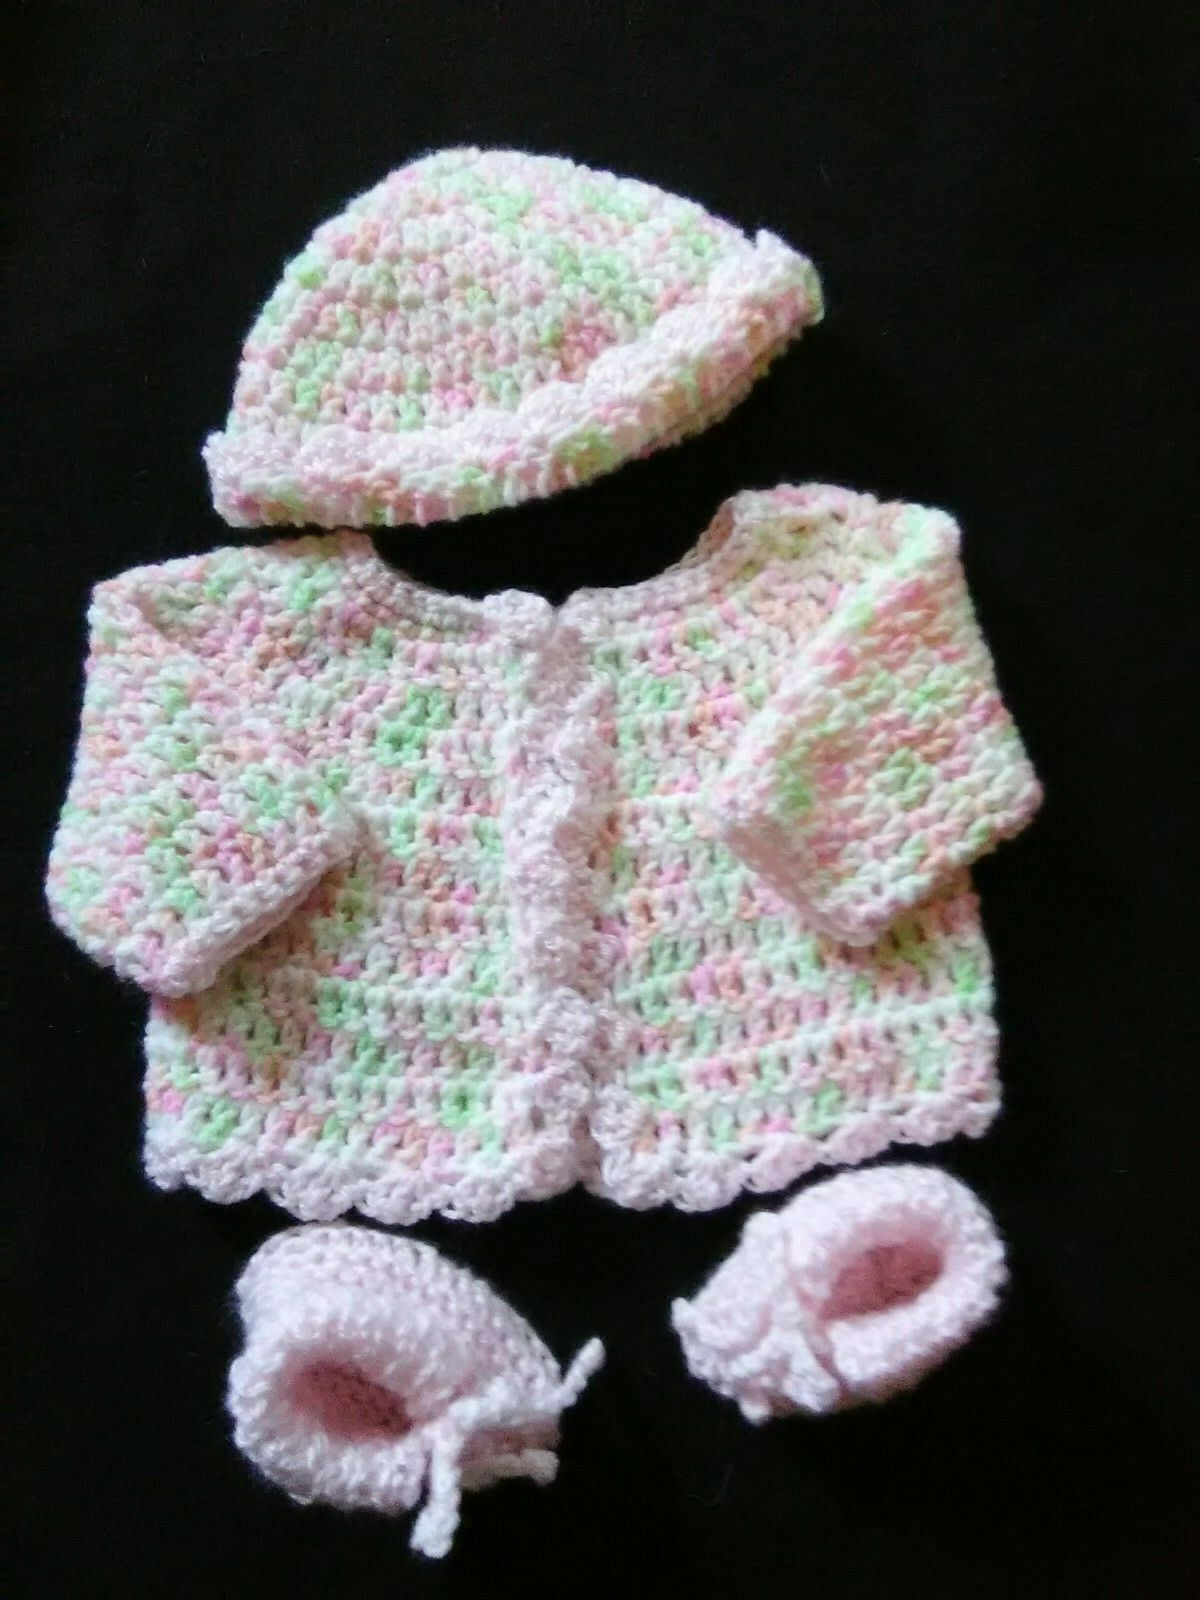 Hand Crocheted Pastel Baby Girl Sweater, Hat And Booties - $10.00